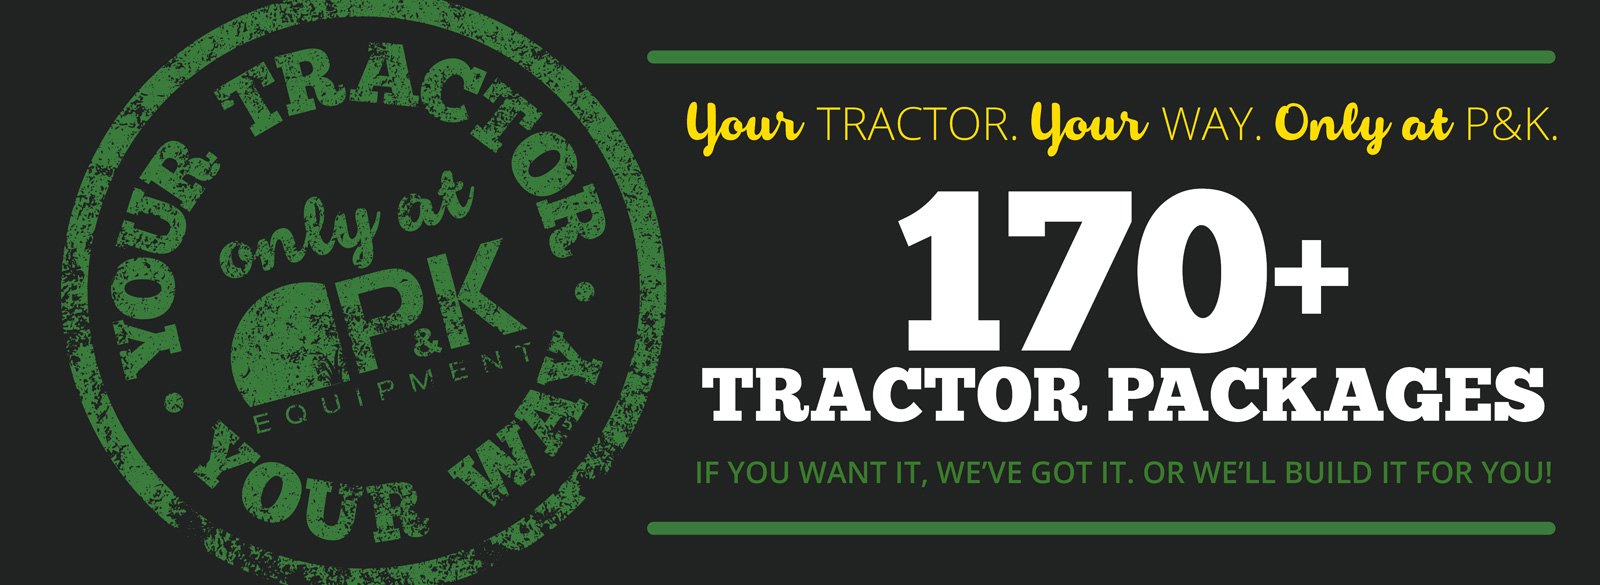 Over 170 Tractor Packages available- Your Tractor, Your Way, only at P&K!